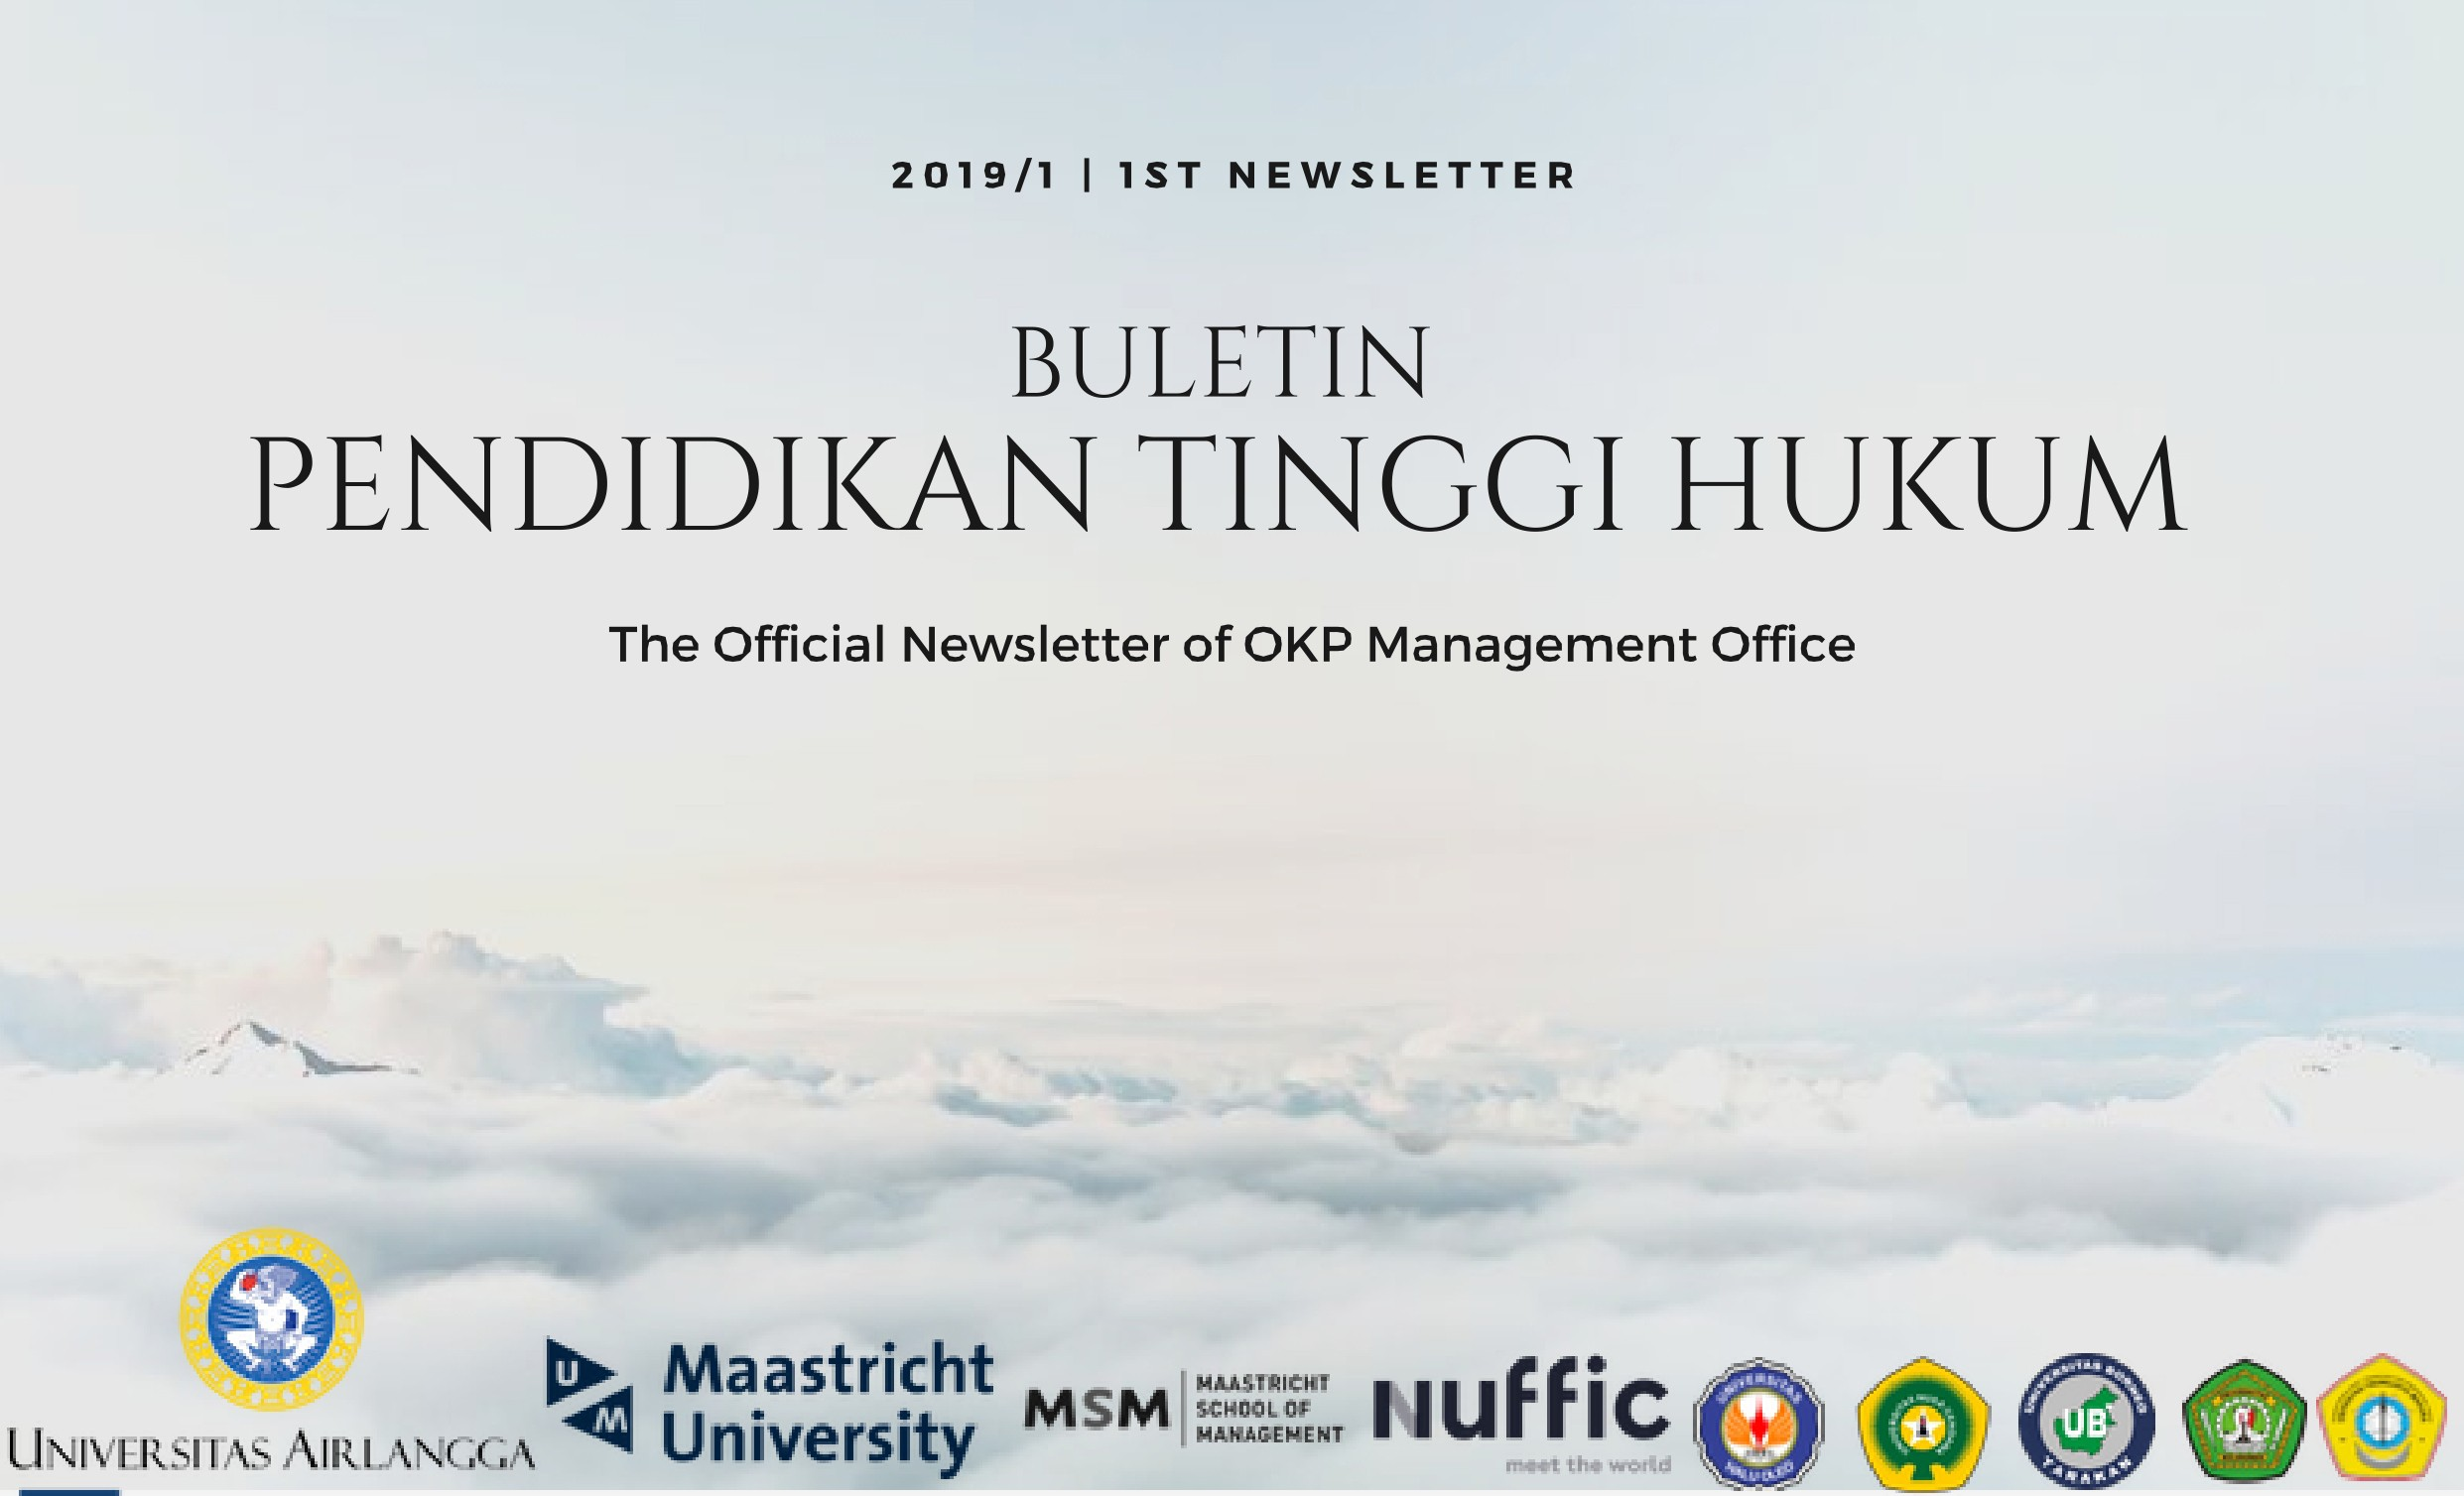 1st NEWSLETTER, BULETIN PENDIDIKAN TINGGI HUKUM, The Official Newsletter of OKP Management Office